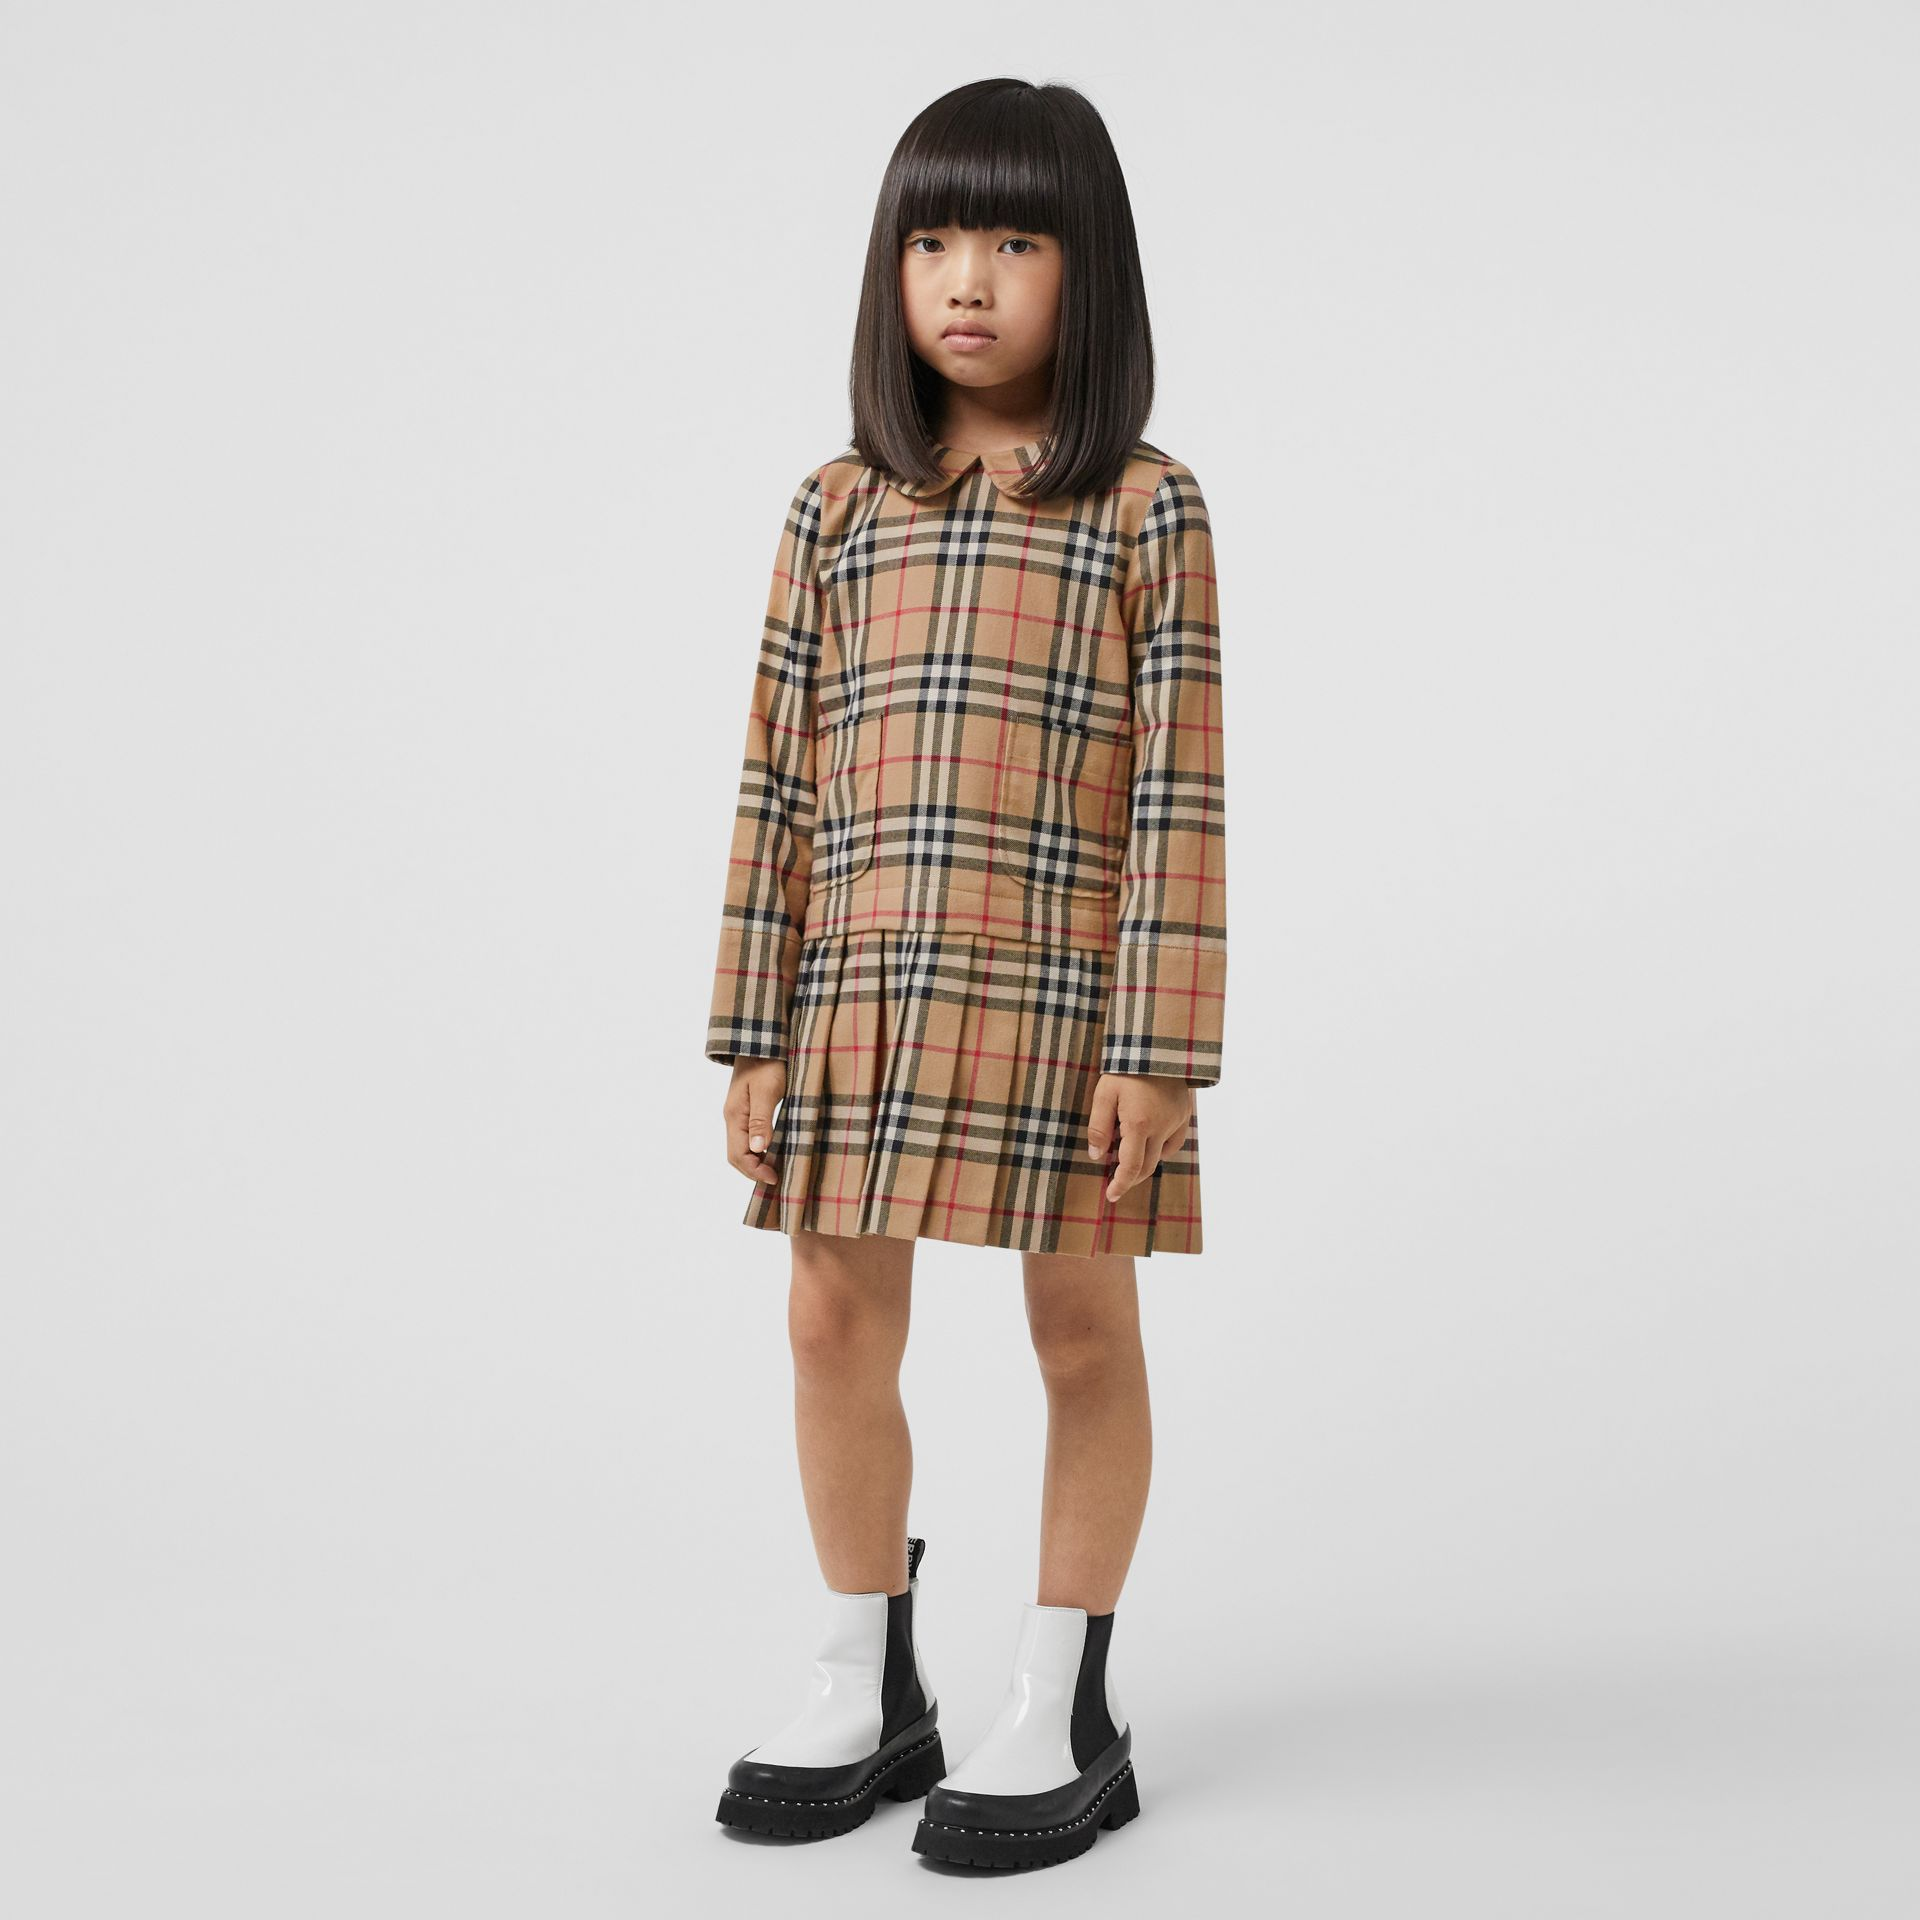 Peter Pan Collar Vintage Check Cotton Dress in Archive Beige | Burberry - gallery image 2